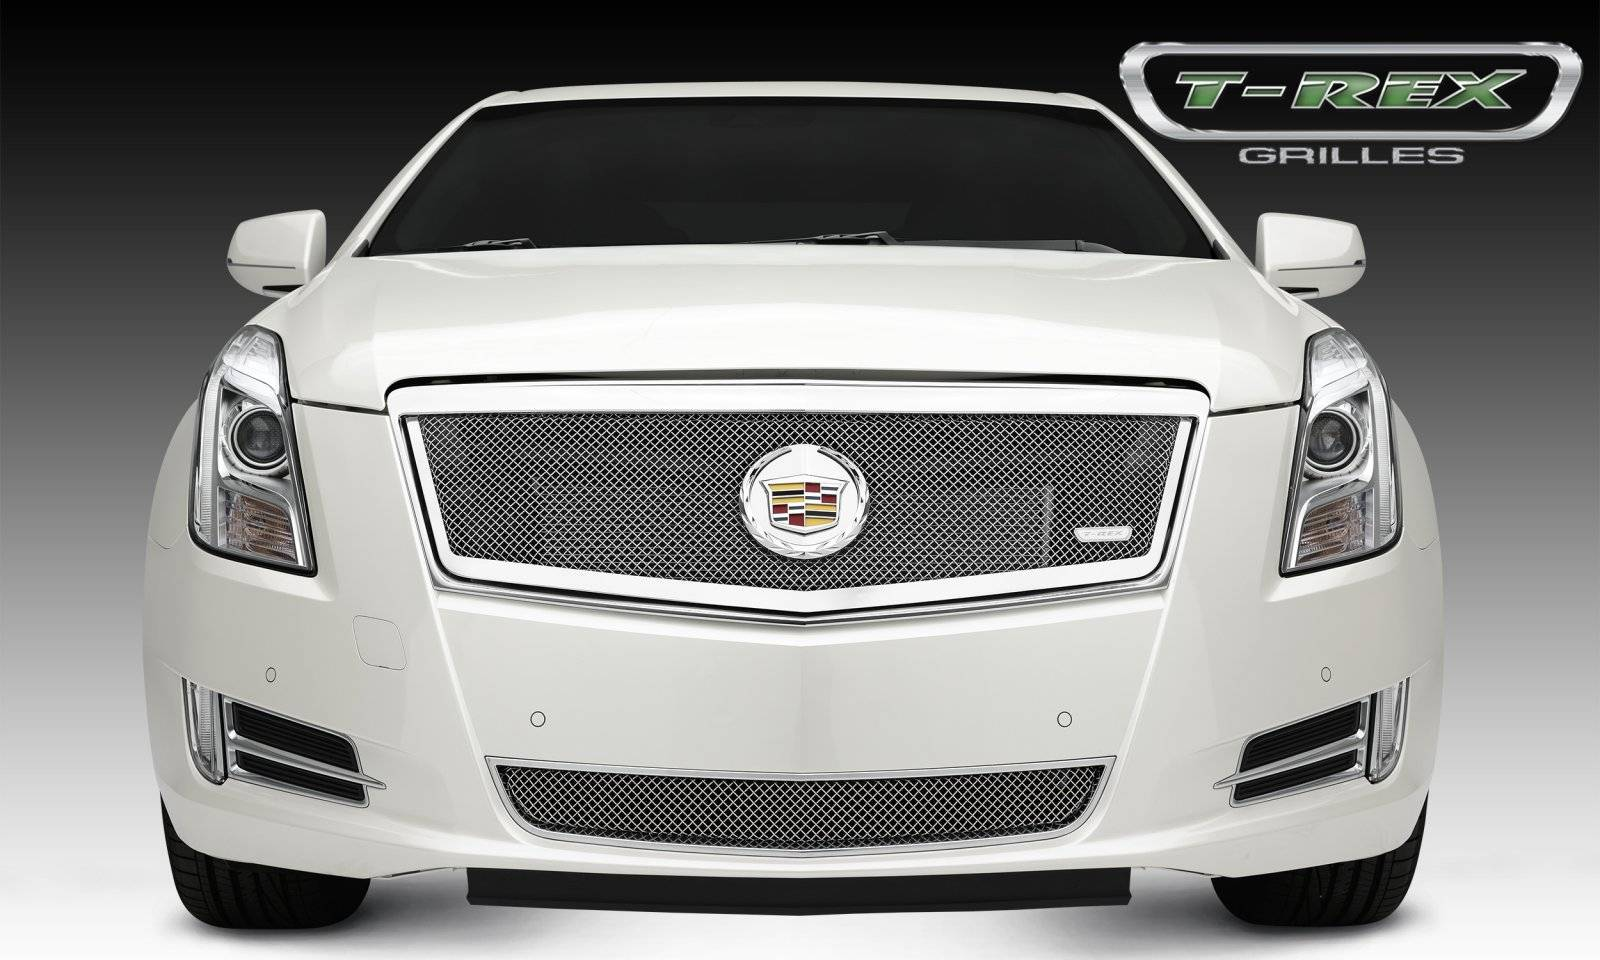 cadillac xts upper class formed mesh grille main full. Black Bedroom Furniture Sets. Home Design Ideas